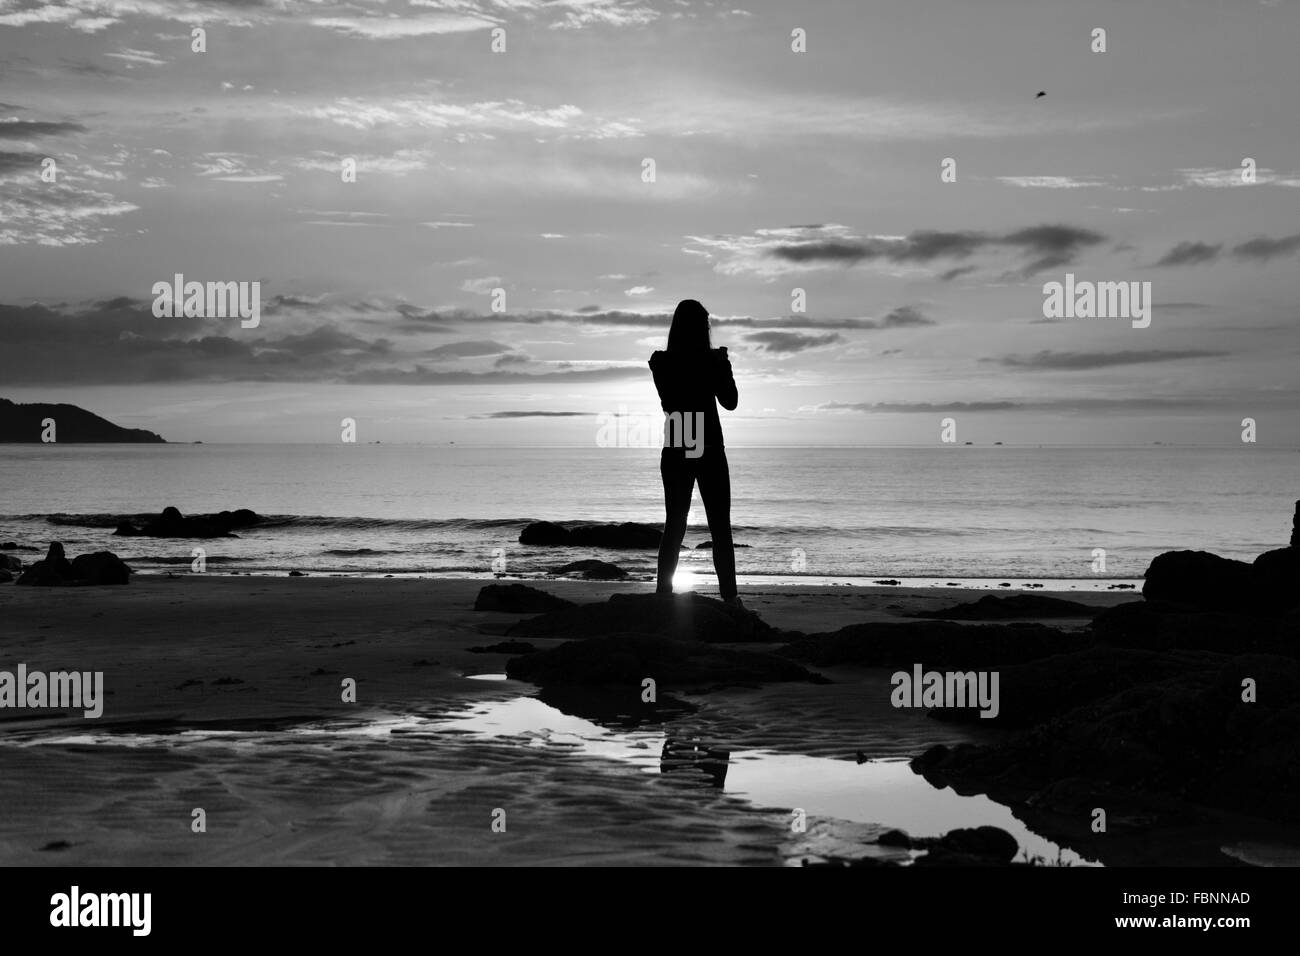 Silhouette Of Woman On Beach At Sunrise - Stock Image